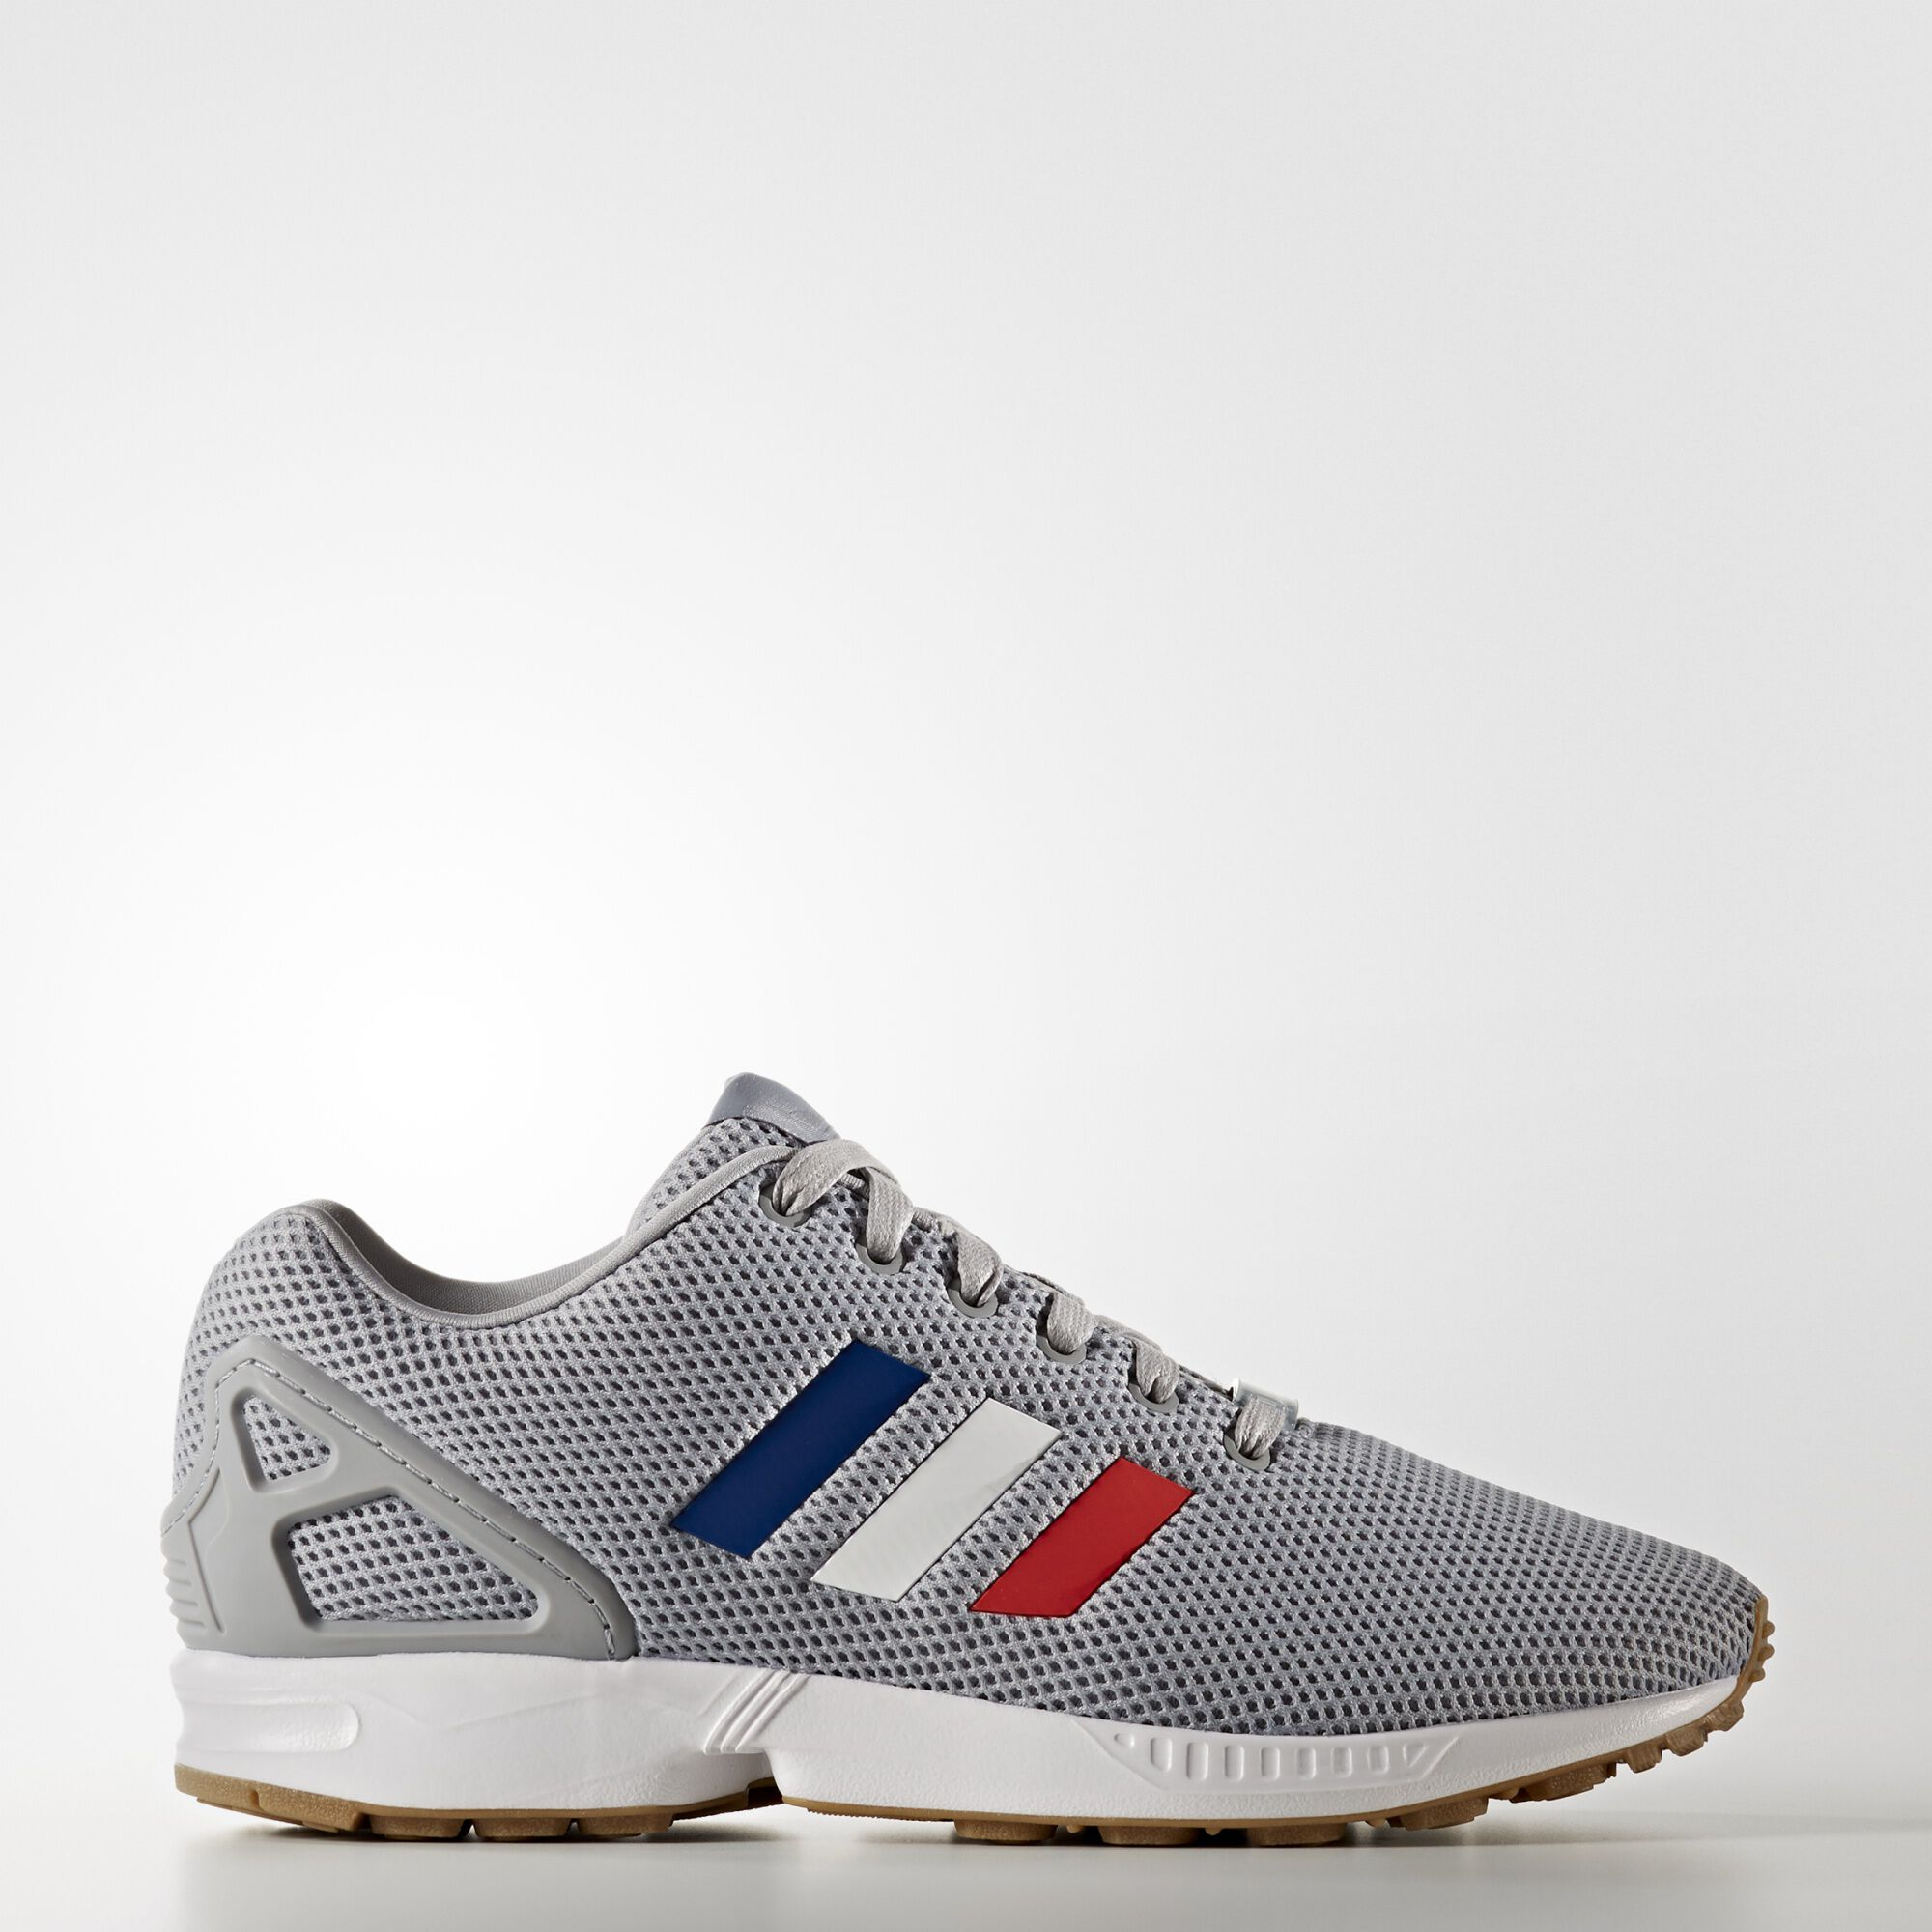 Newest Adidas Originals Zx Flux Grey Mens Trainers Outlet UK0171